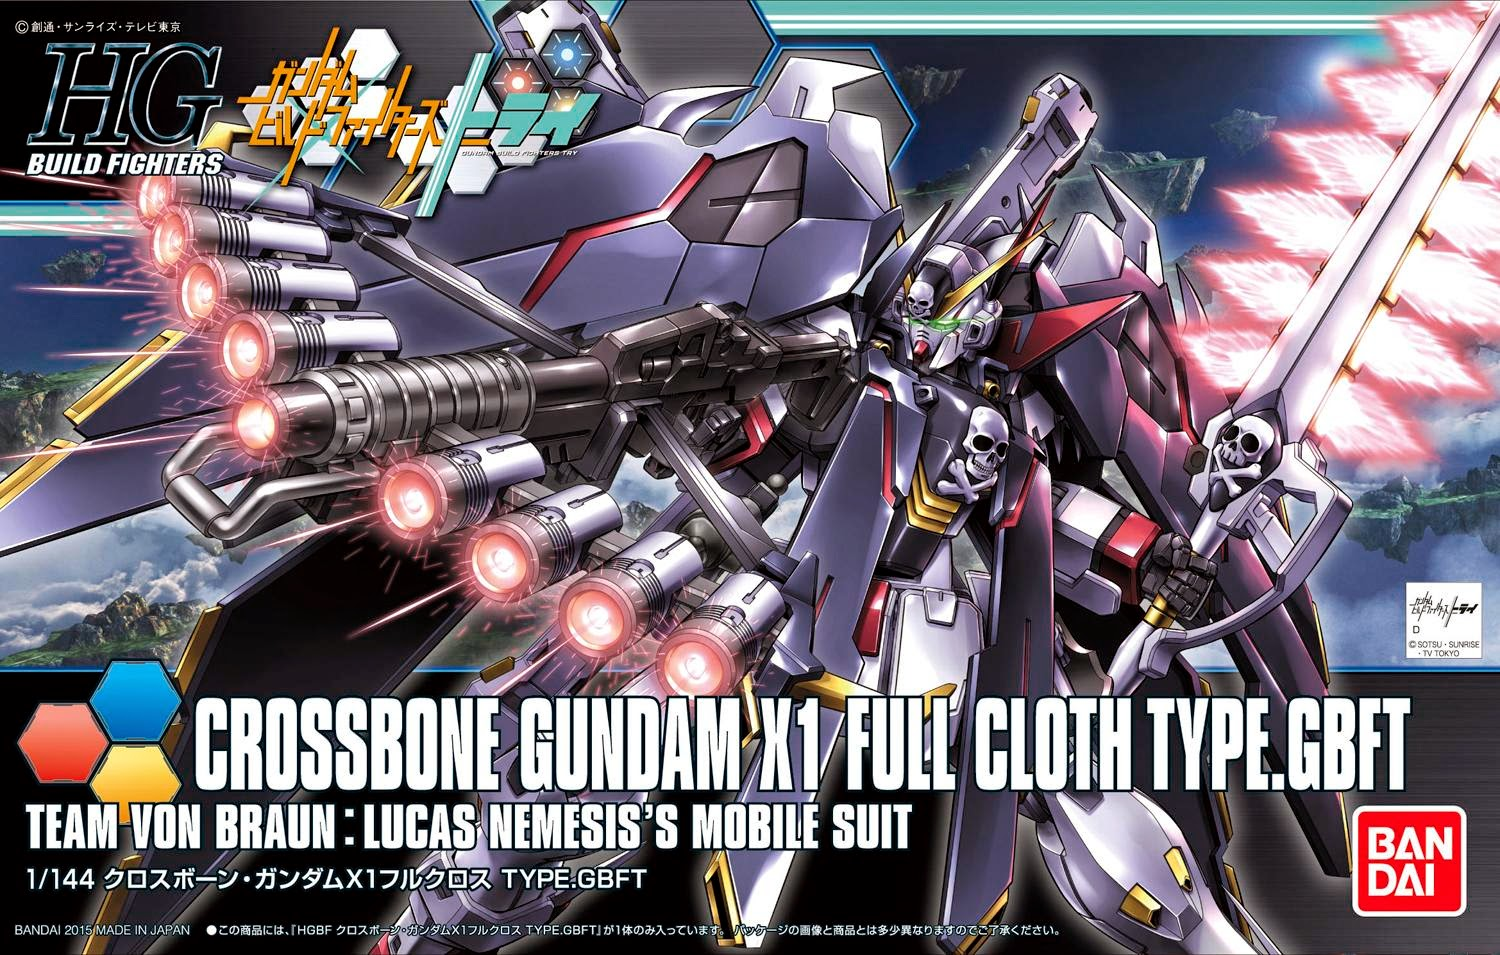 HG 1/144 CROSSBONE GUNDAM X1 FULL CLOTH VER.GBF